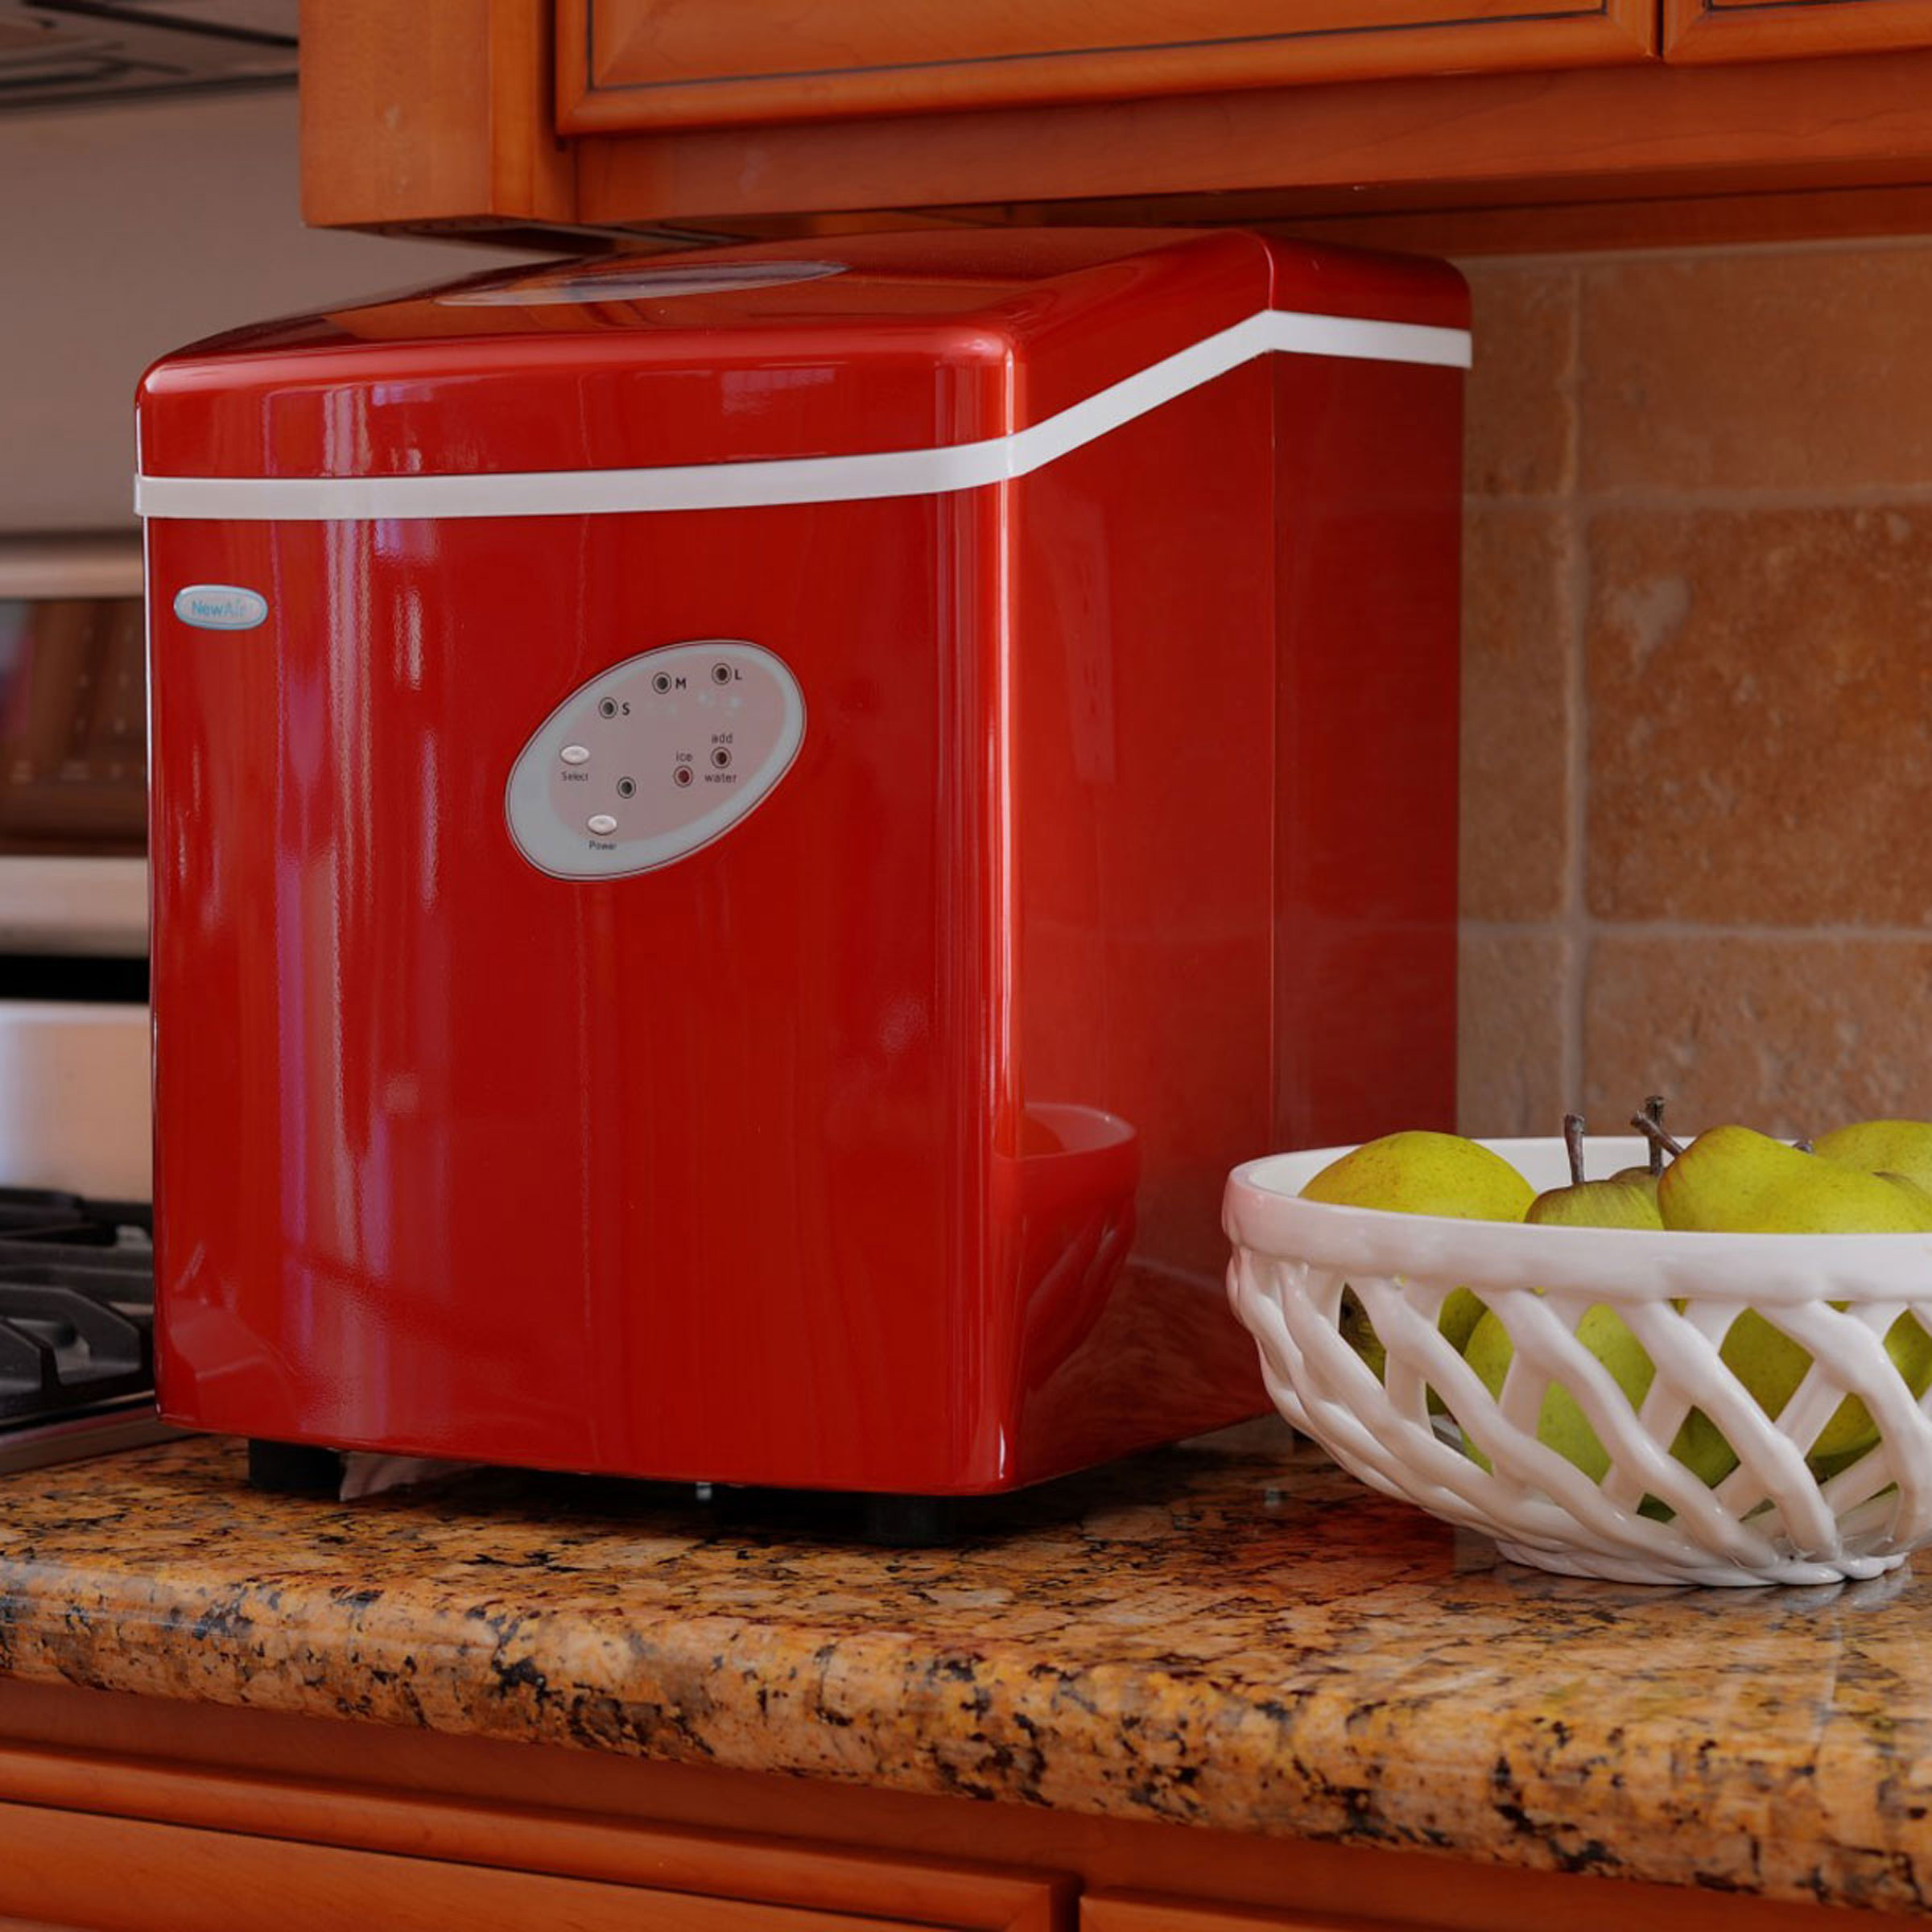 NEWAIR AI-100R Portable Red Ice Maker 28 lbs per day